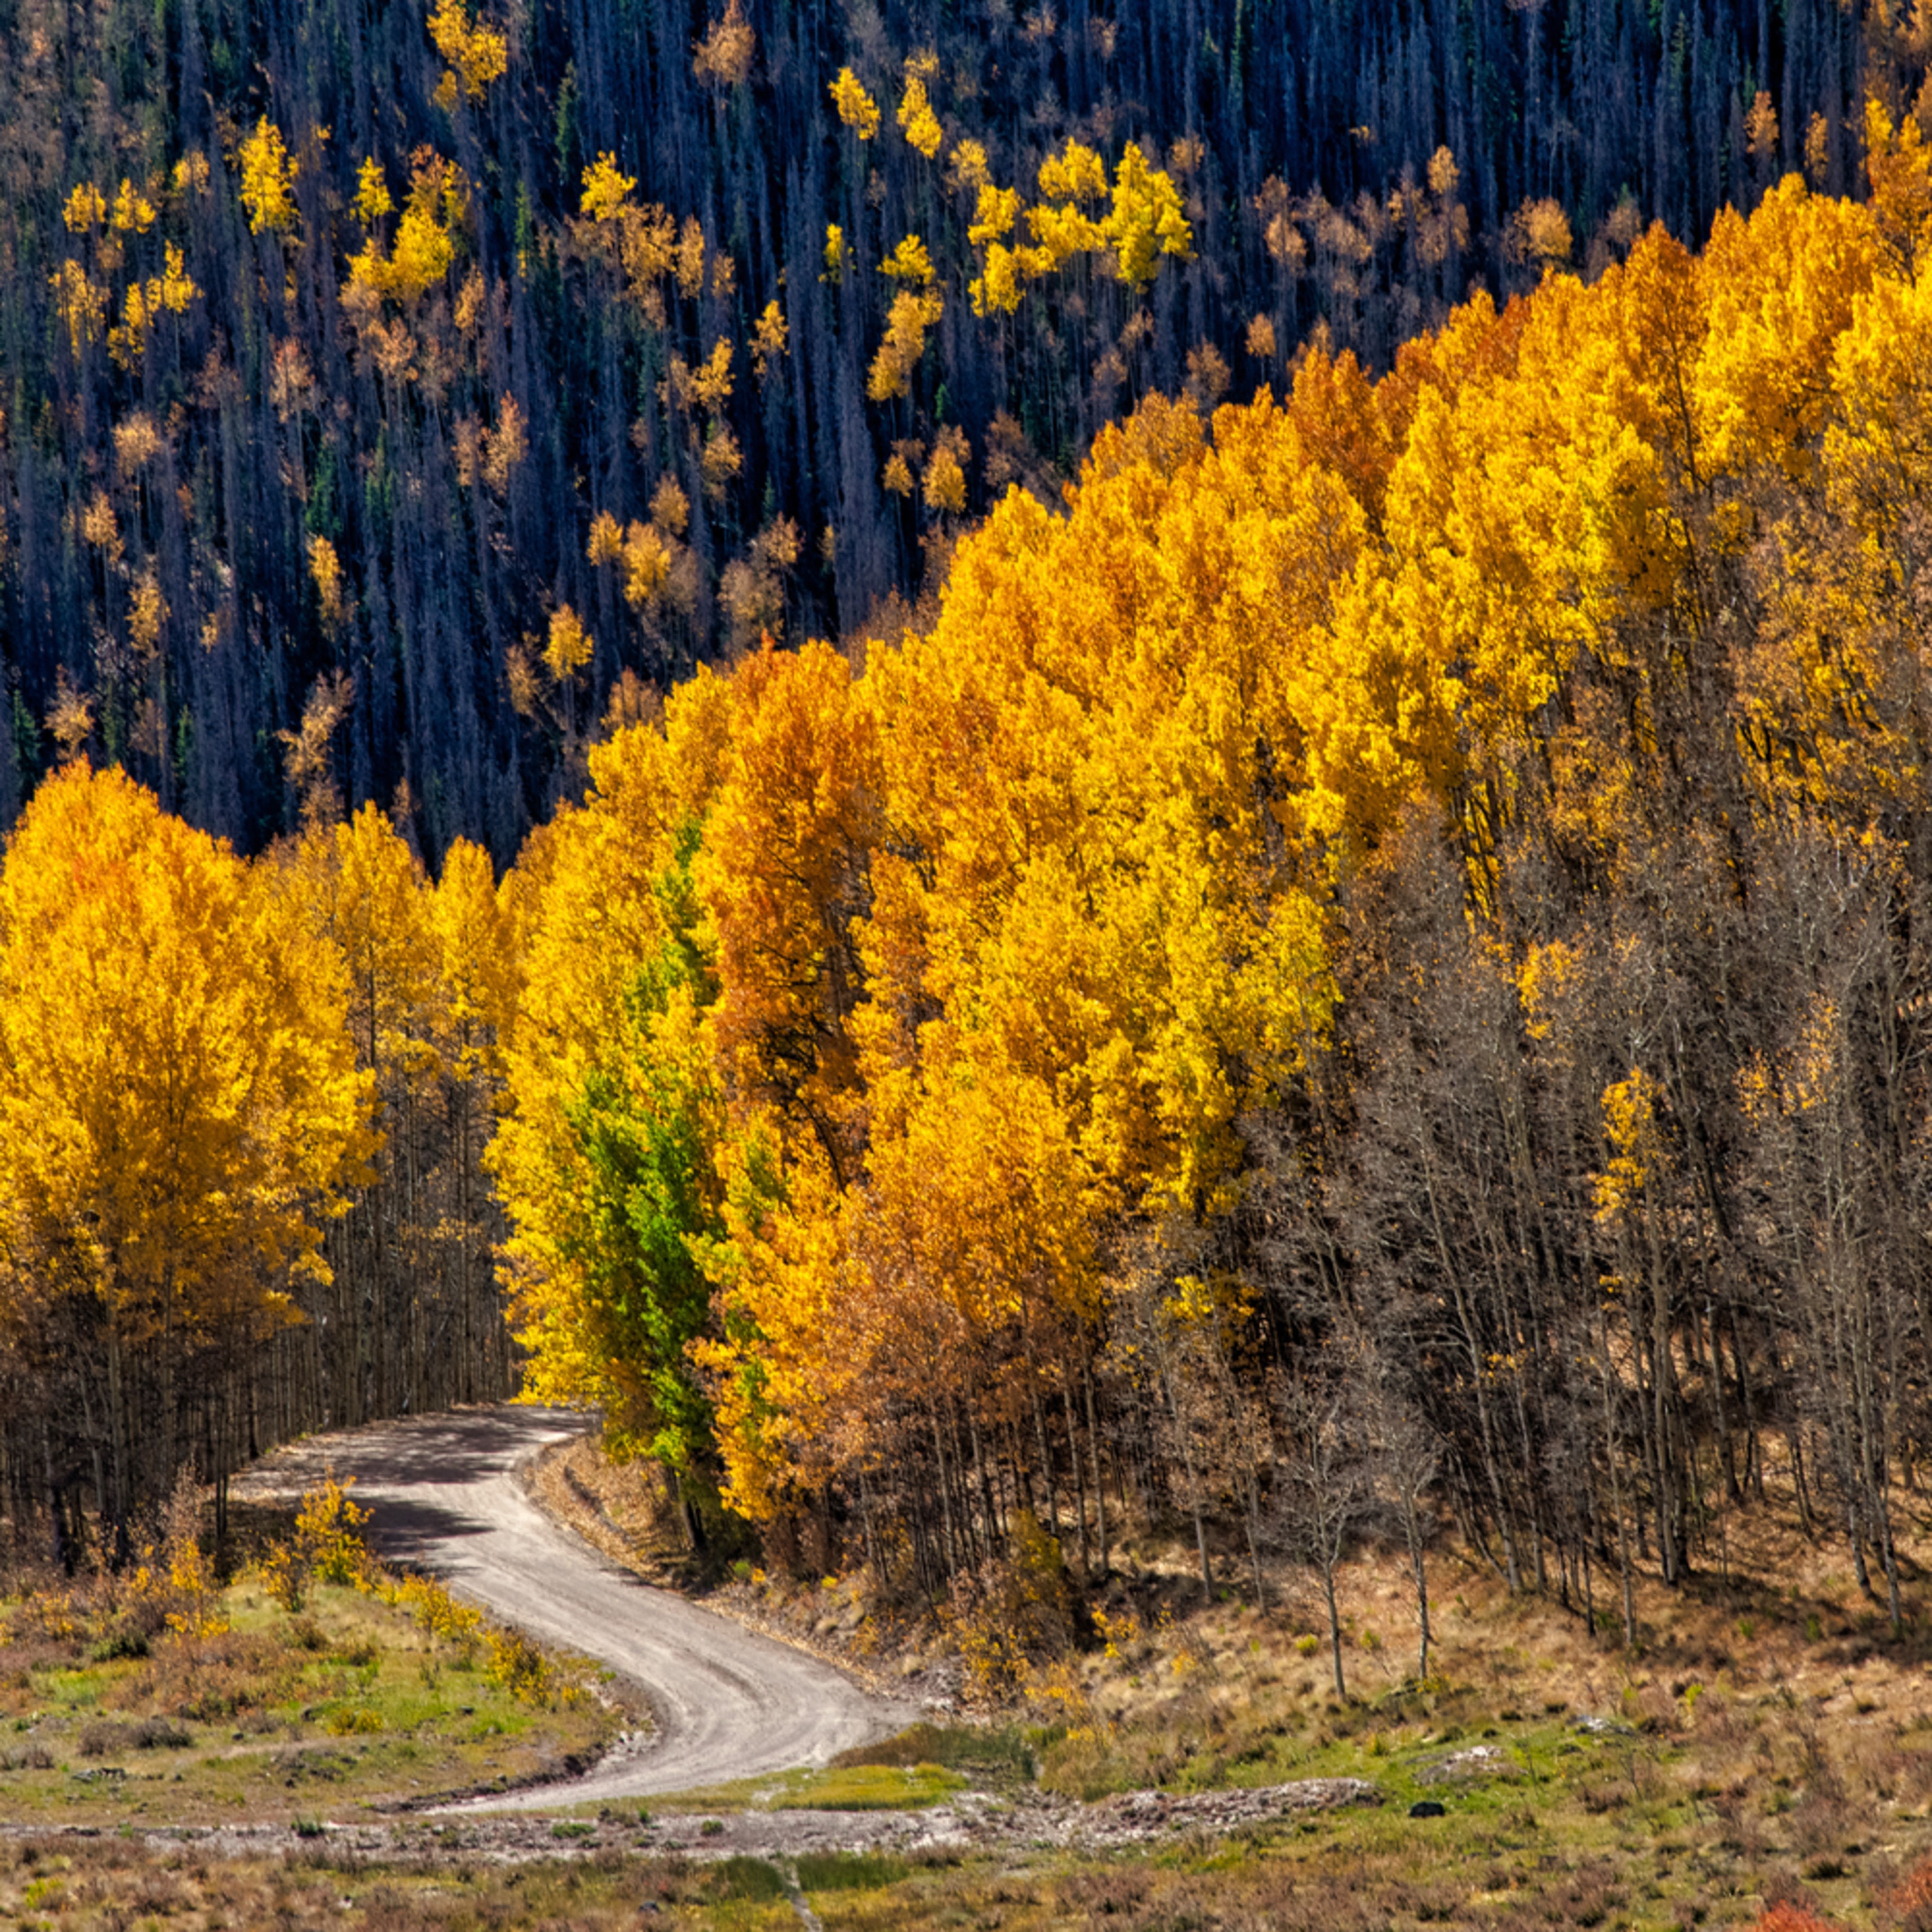 Andy crawford photography colorado aspens 6 liljsf